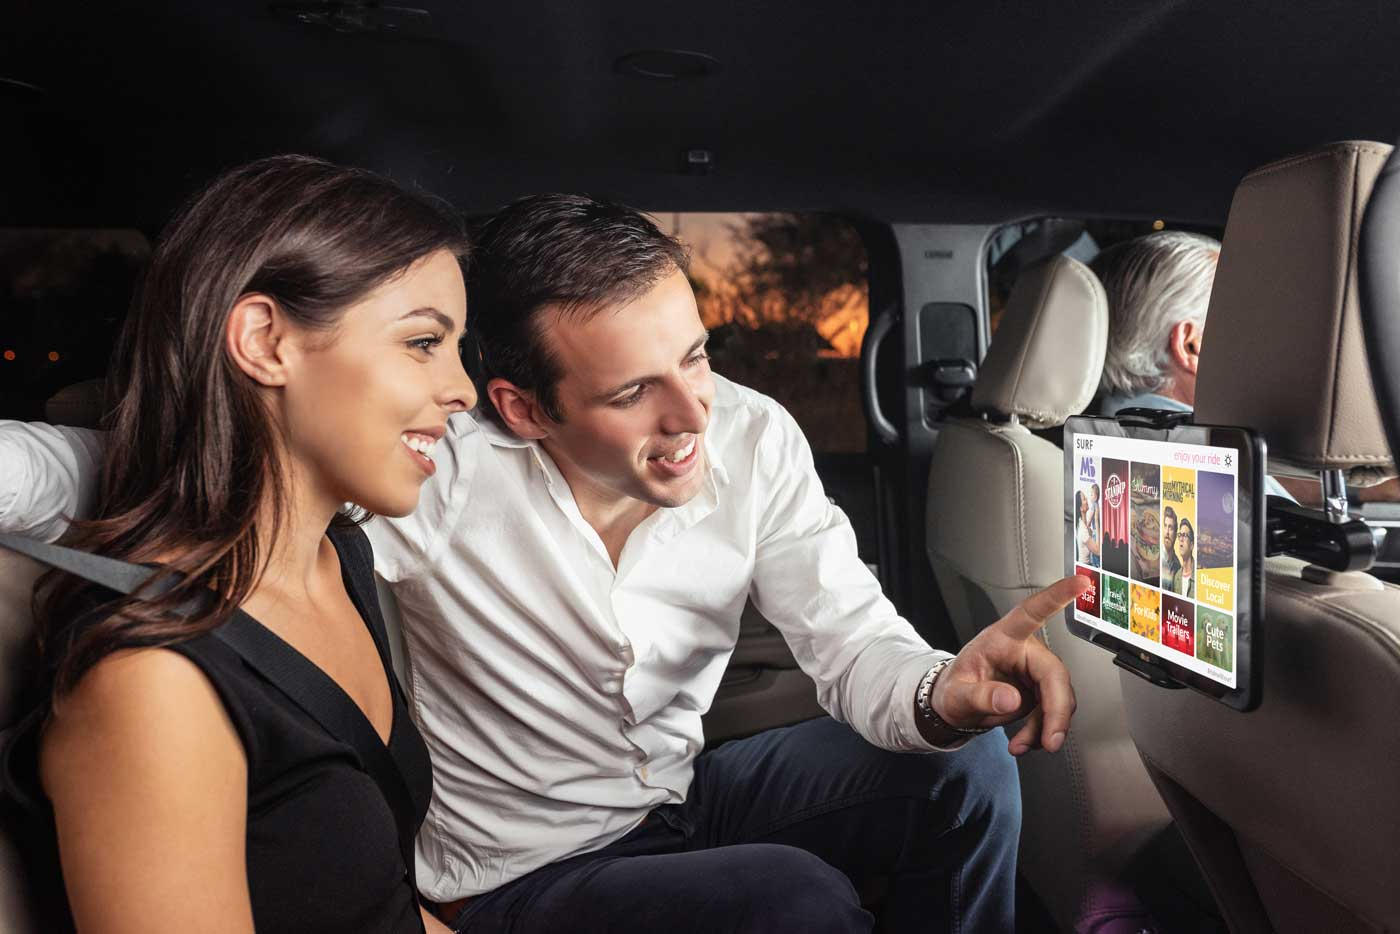 Surf places high-quality entertainment tablets in rideshare vehicles